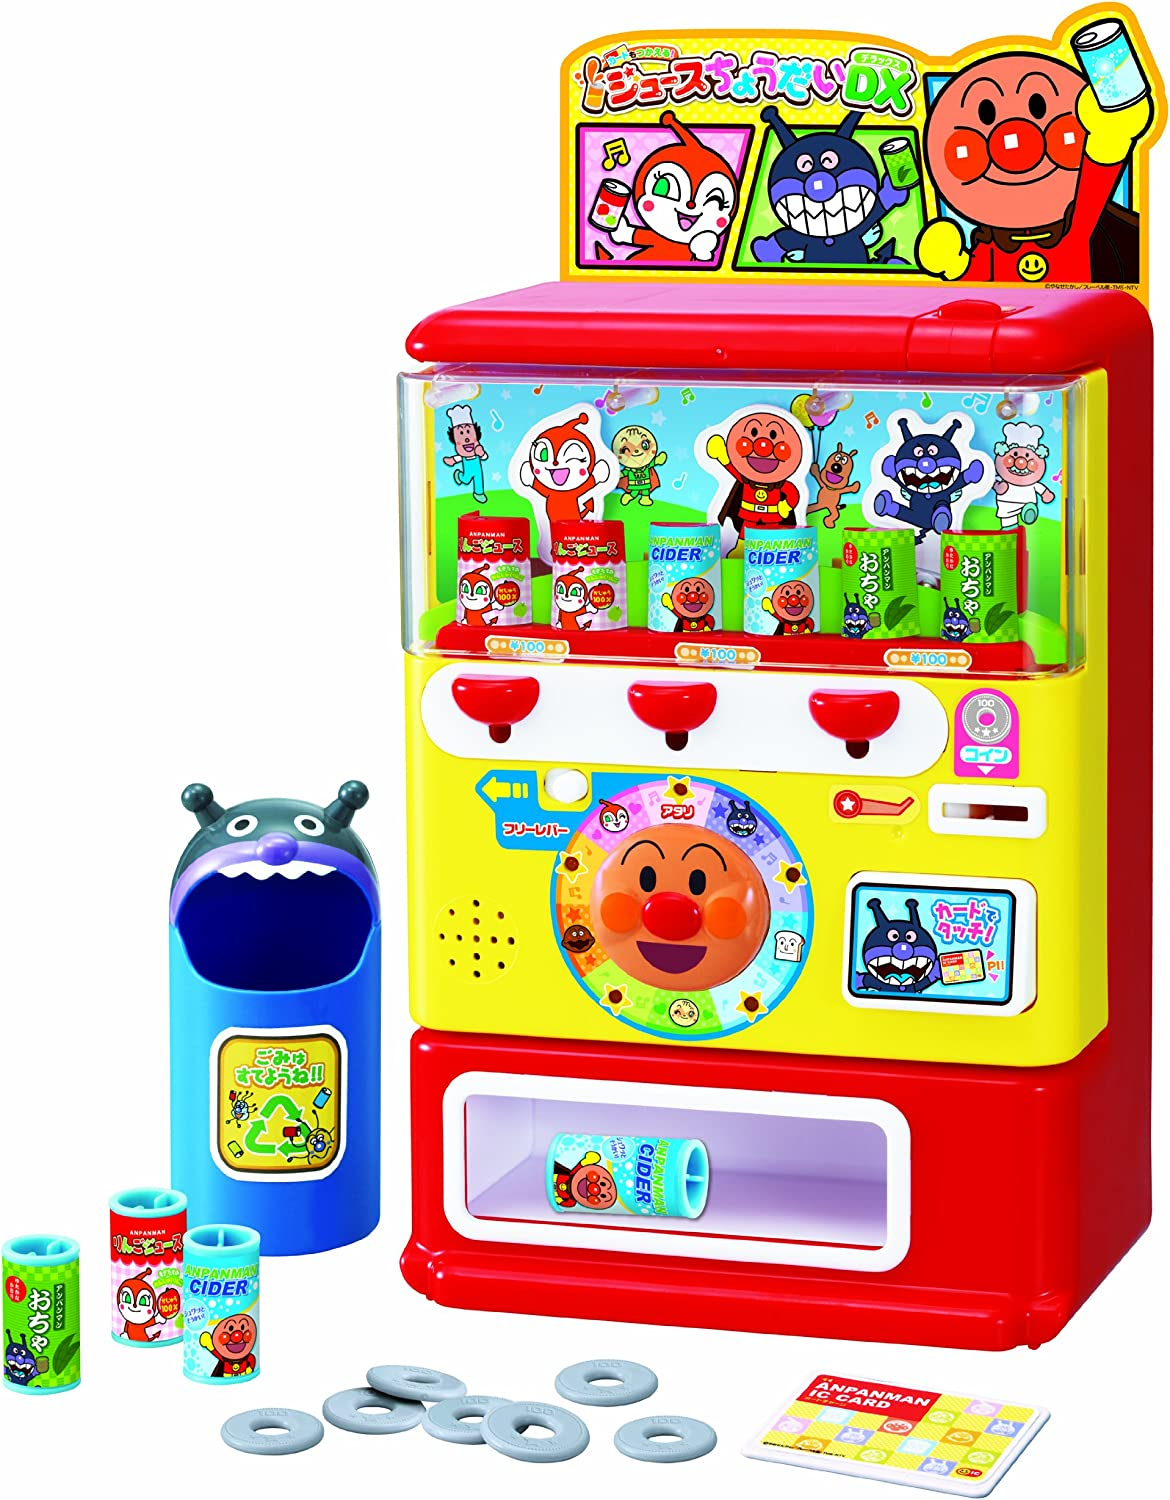 Anpanman card DX give me  Usable juice (japan import)